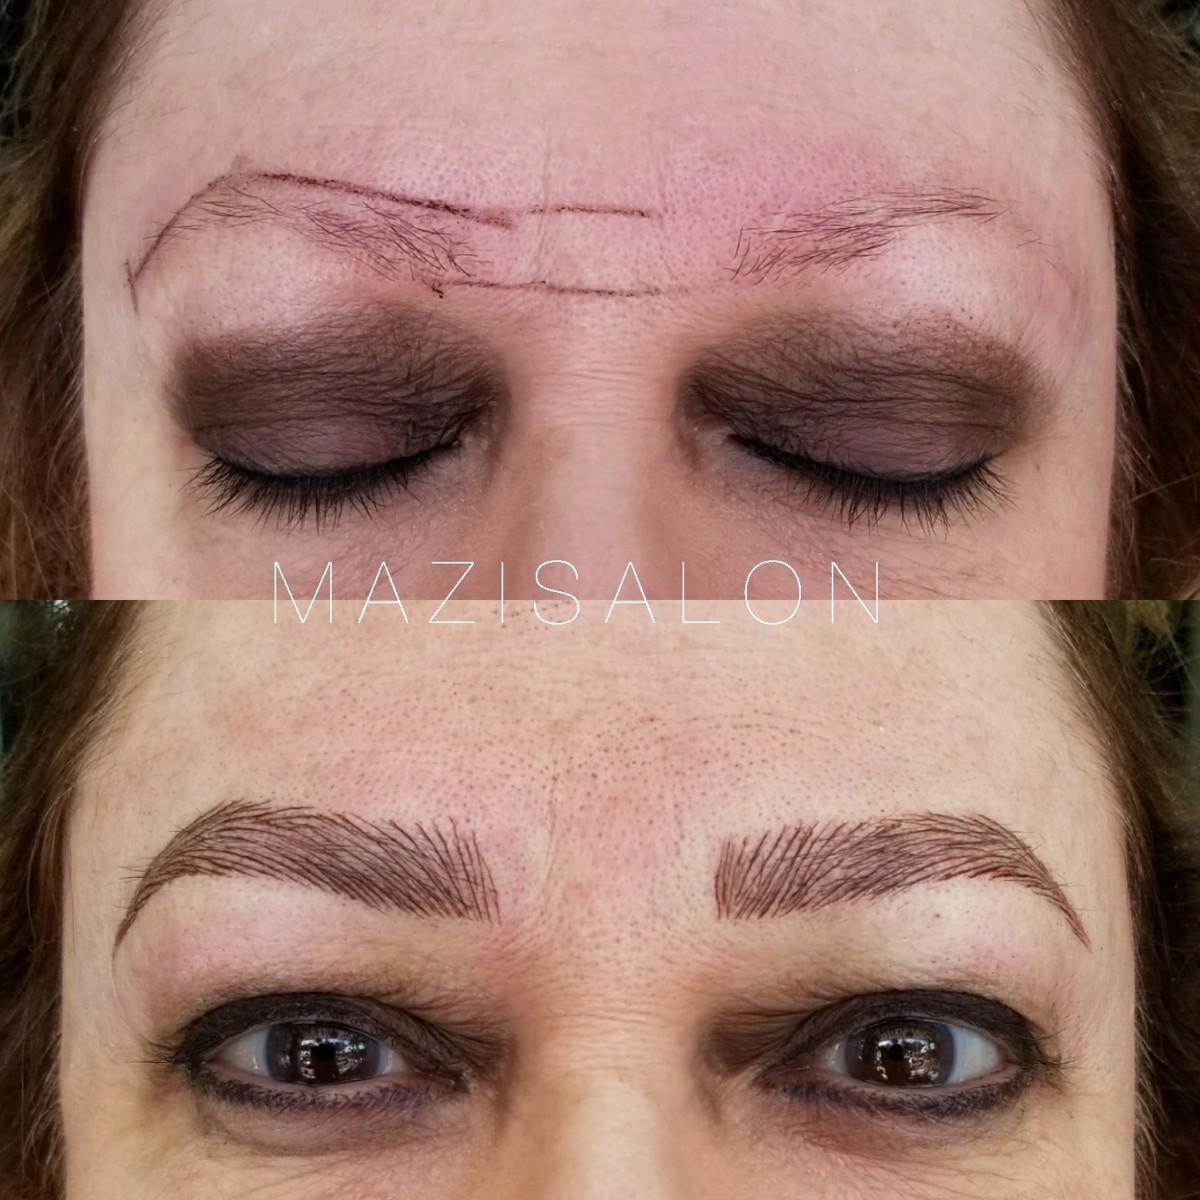 Makeup artist services near me